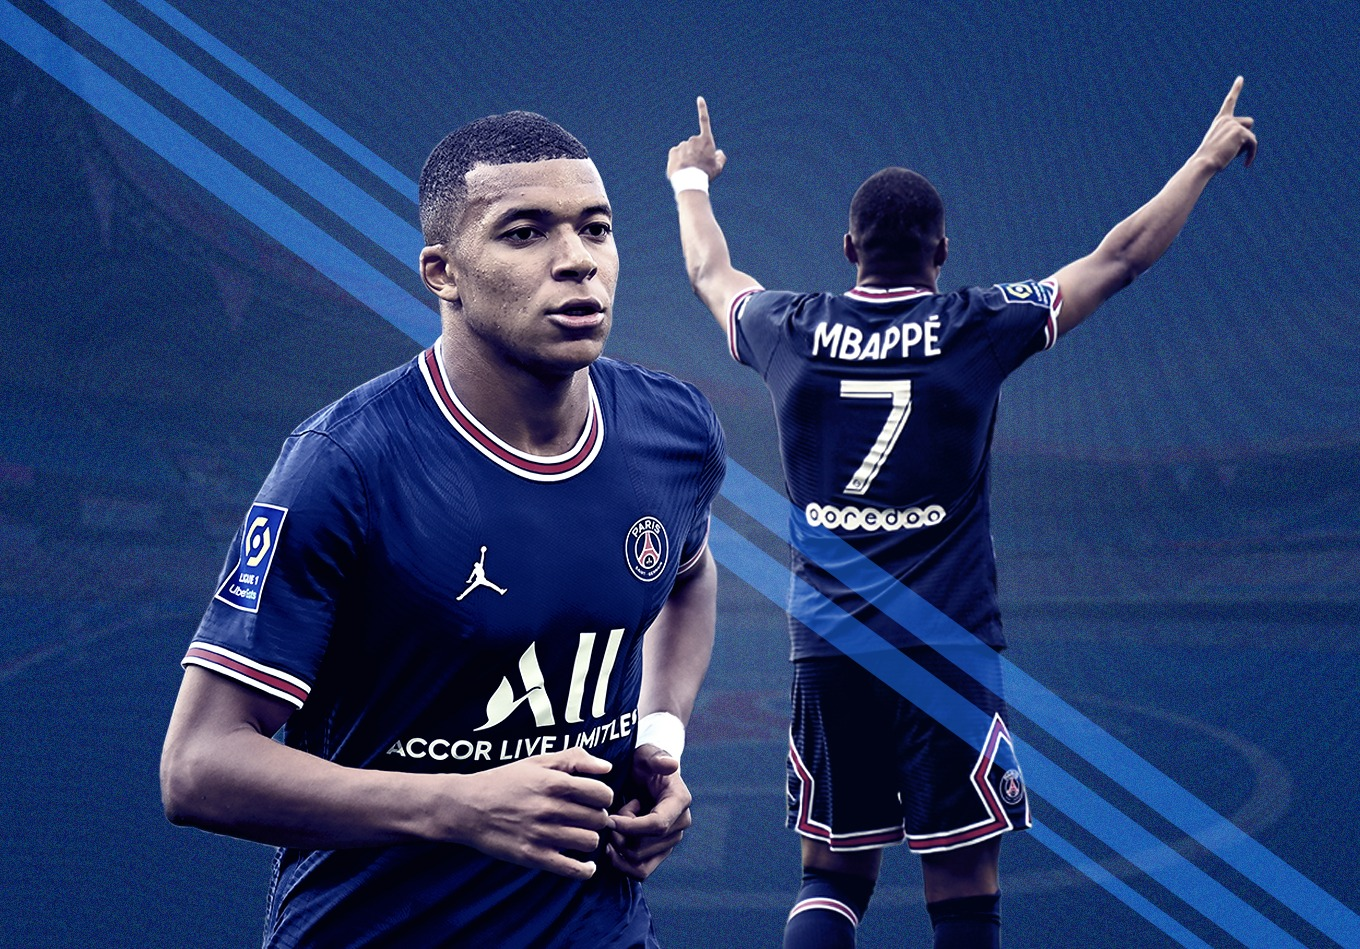 How Does Mbappé's Scoring Rate Compare to Ronaldo and Messi?